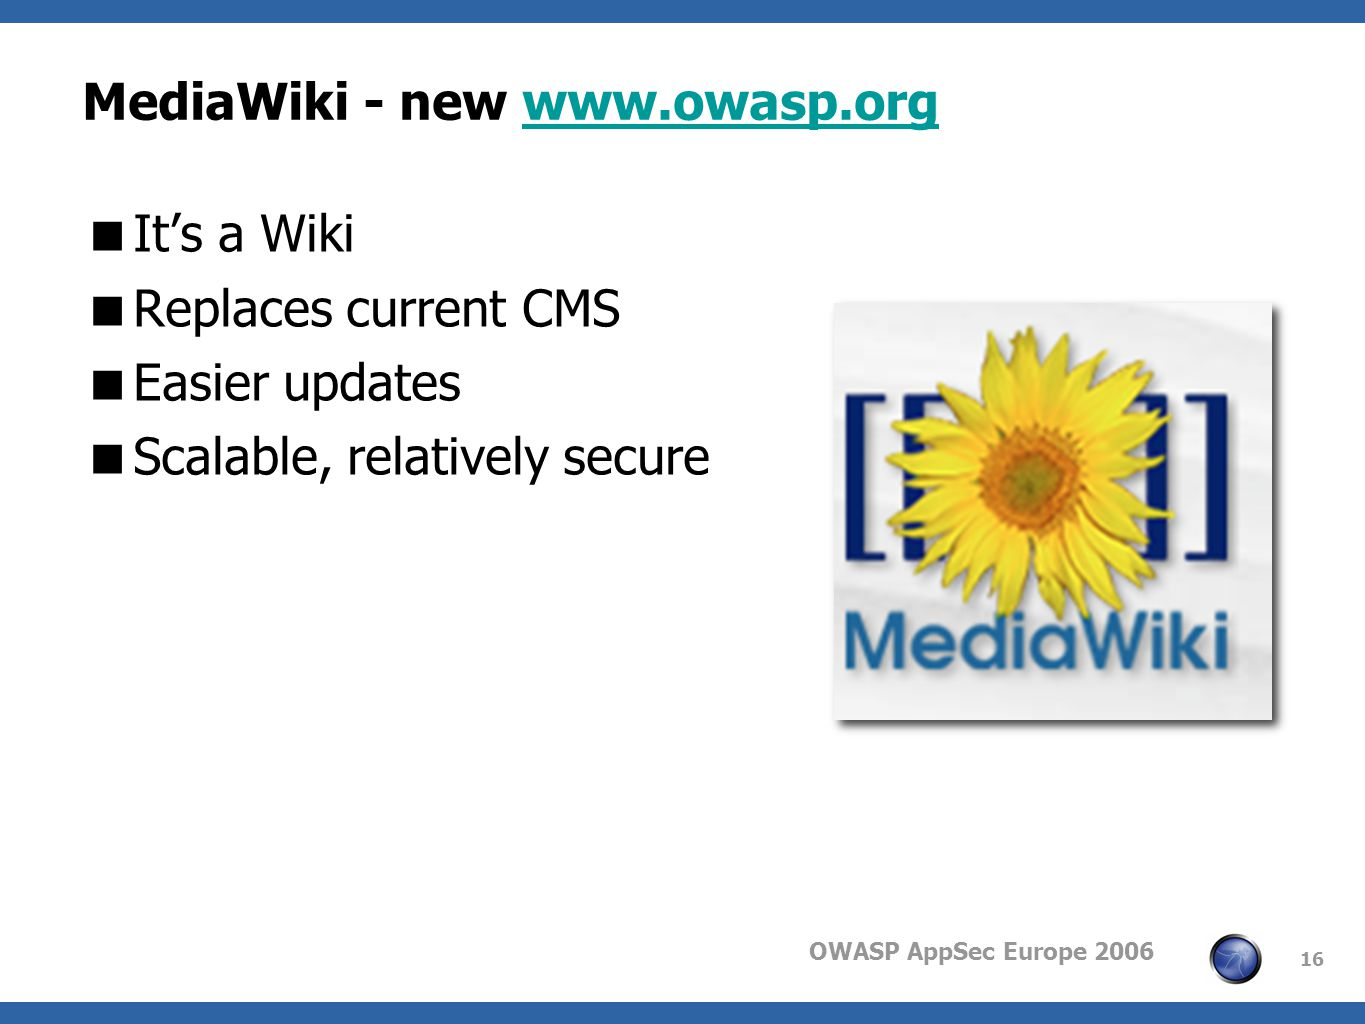 OWASP AppSec Europe 2006 16 MediaWiki - new www.owasp.orgwww.owasp.org Its a Wiki Replaces current CMS Easier updates Scalable, relatively secure